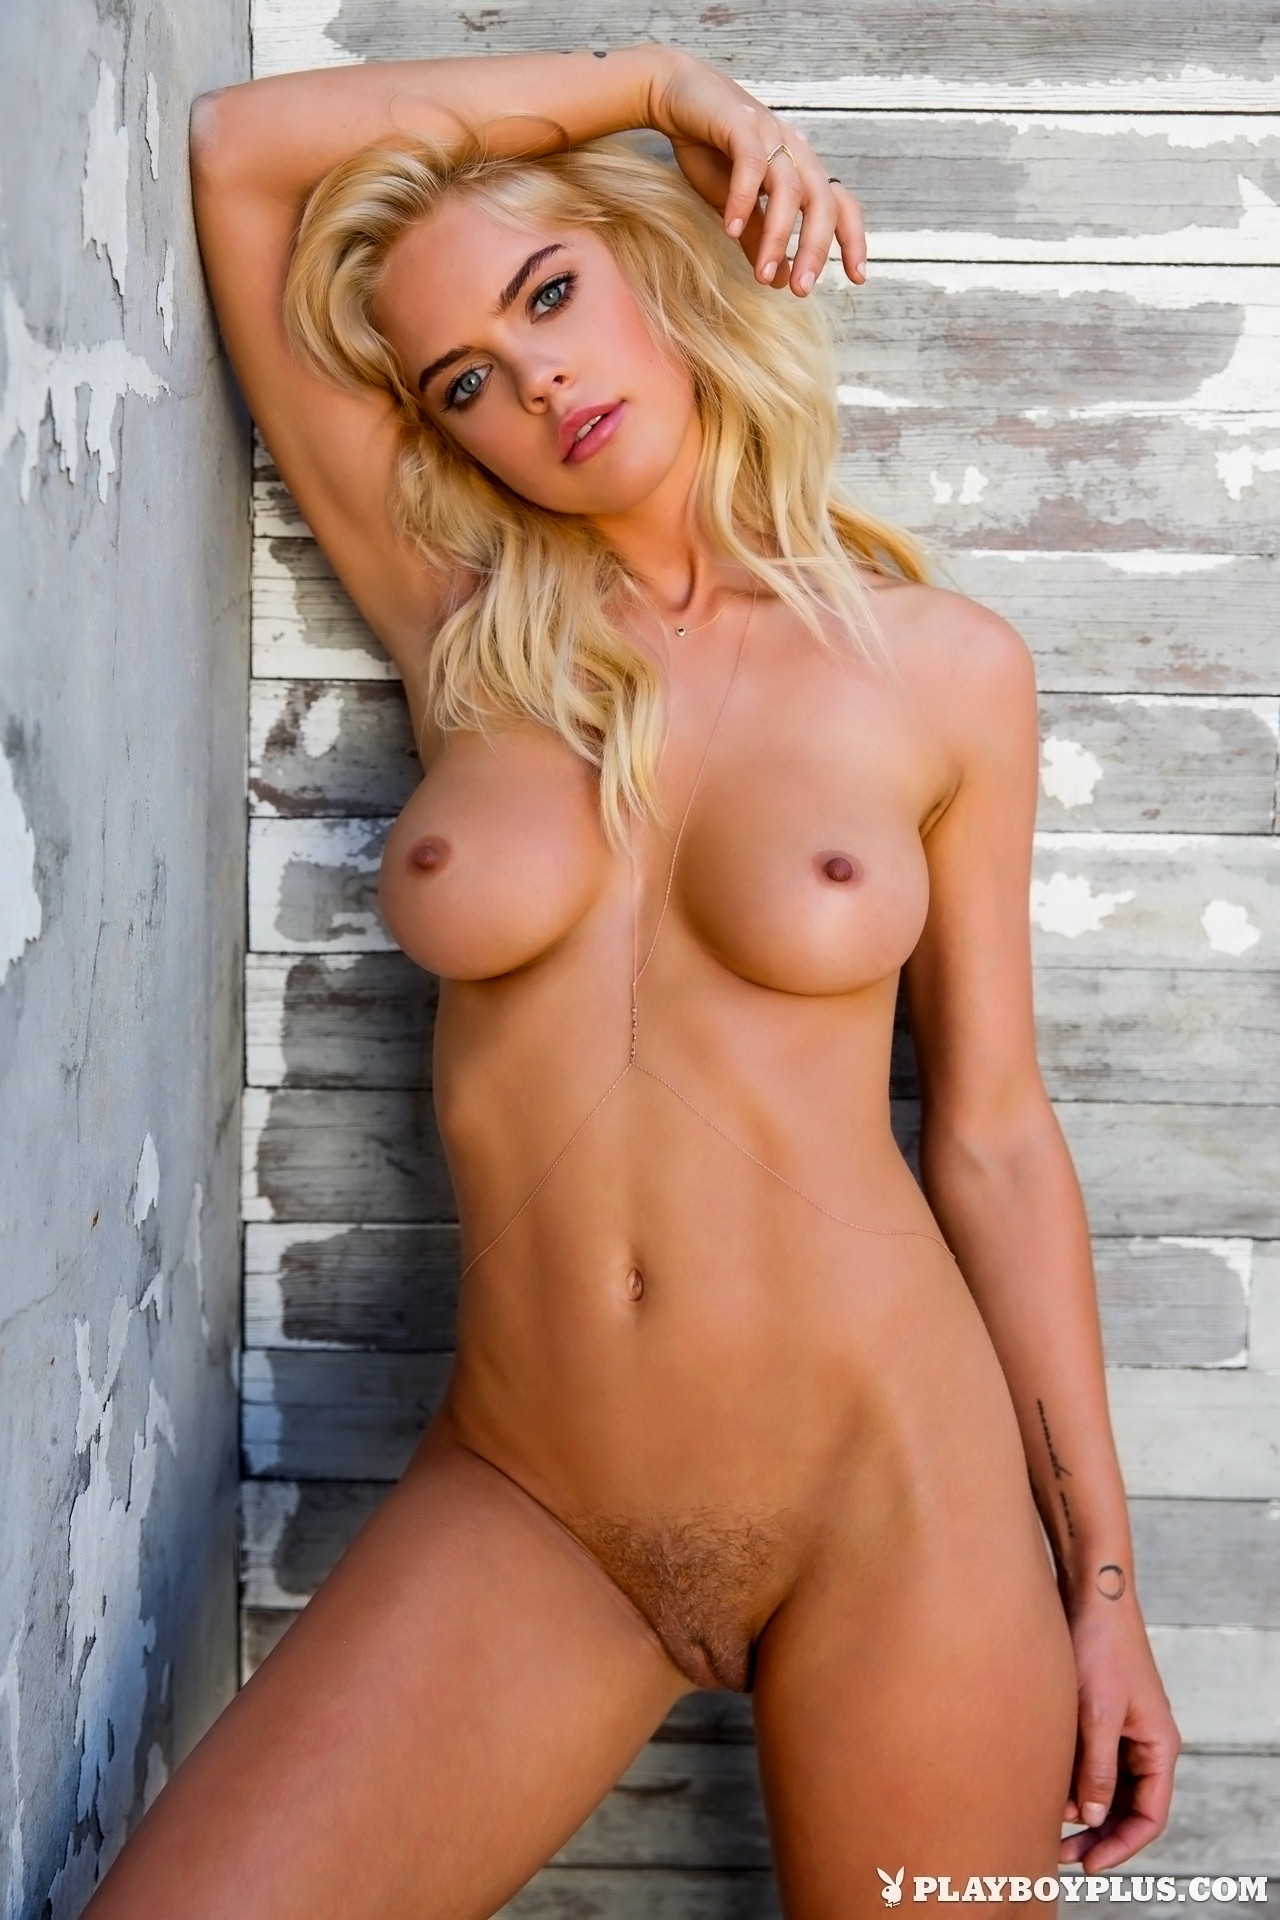 nude Rachael playboy ray